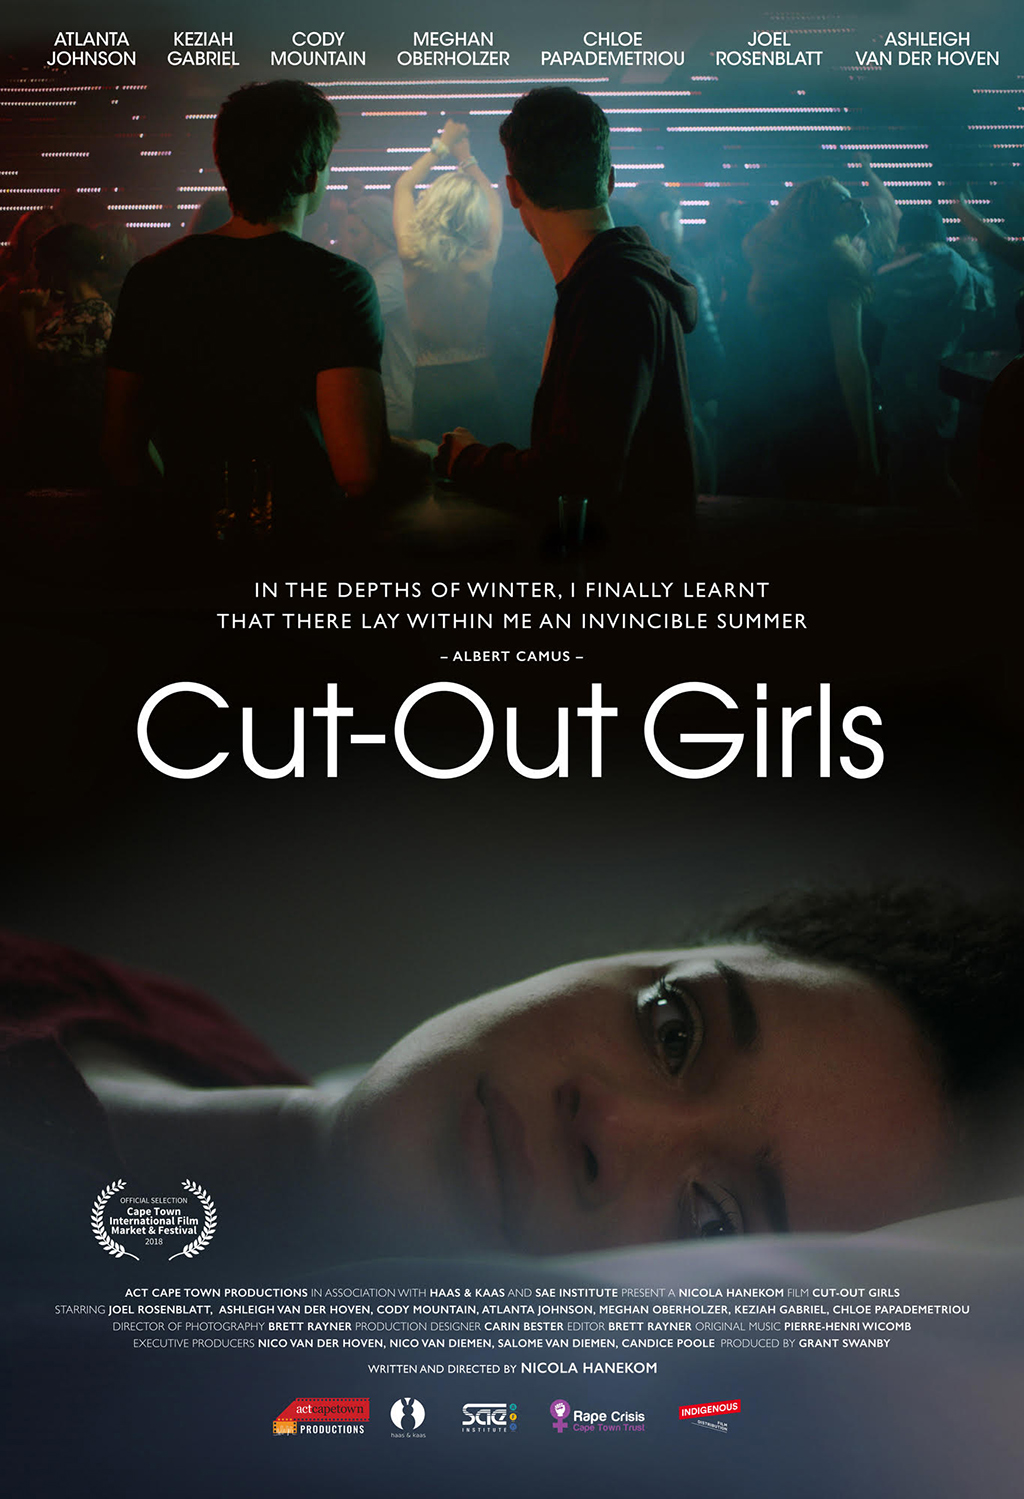 CutOutGirls_MoviePoster